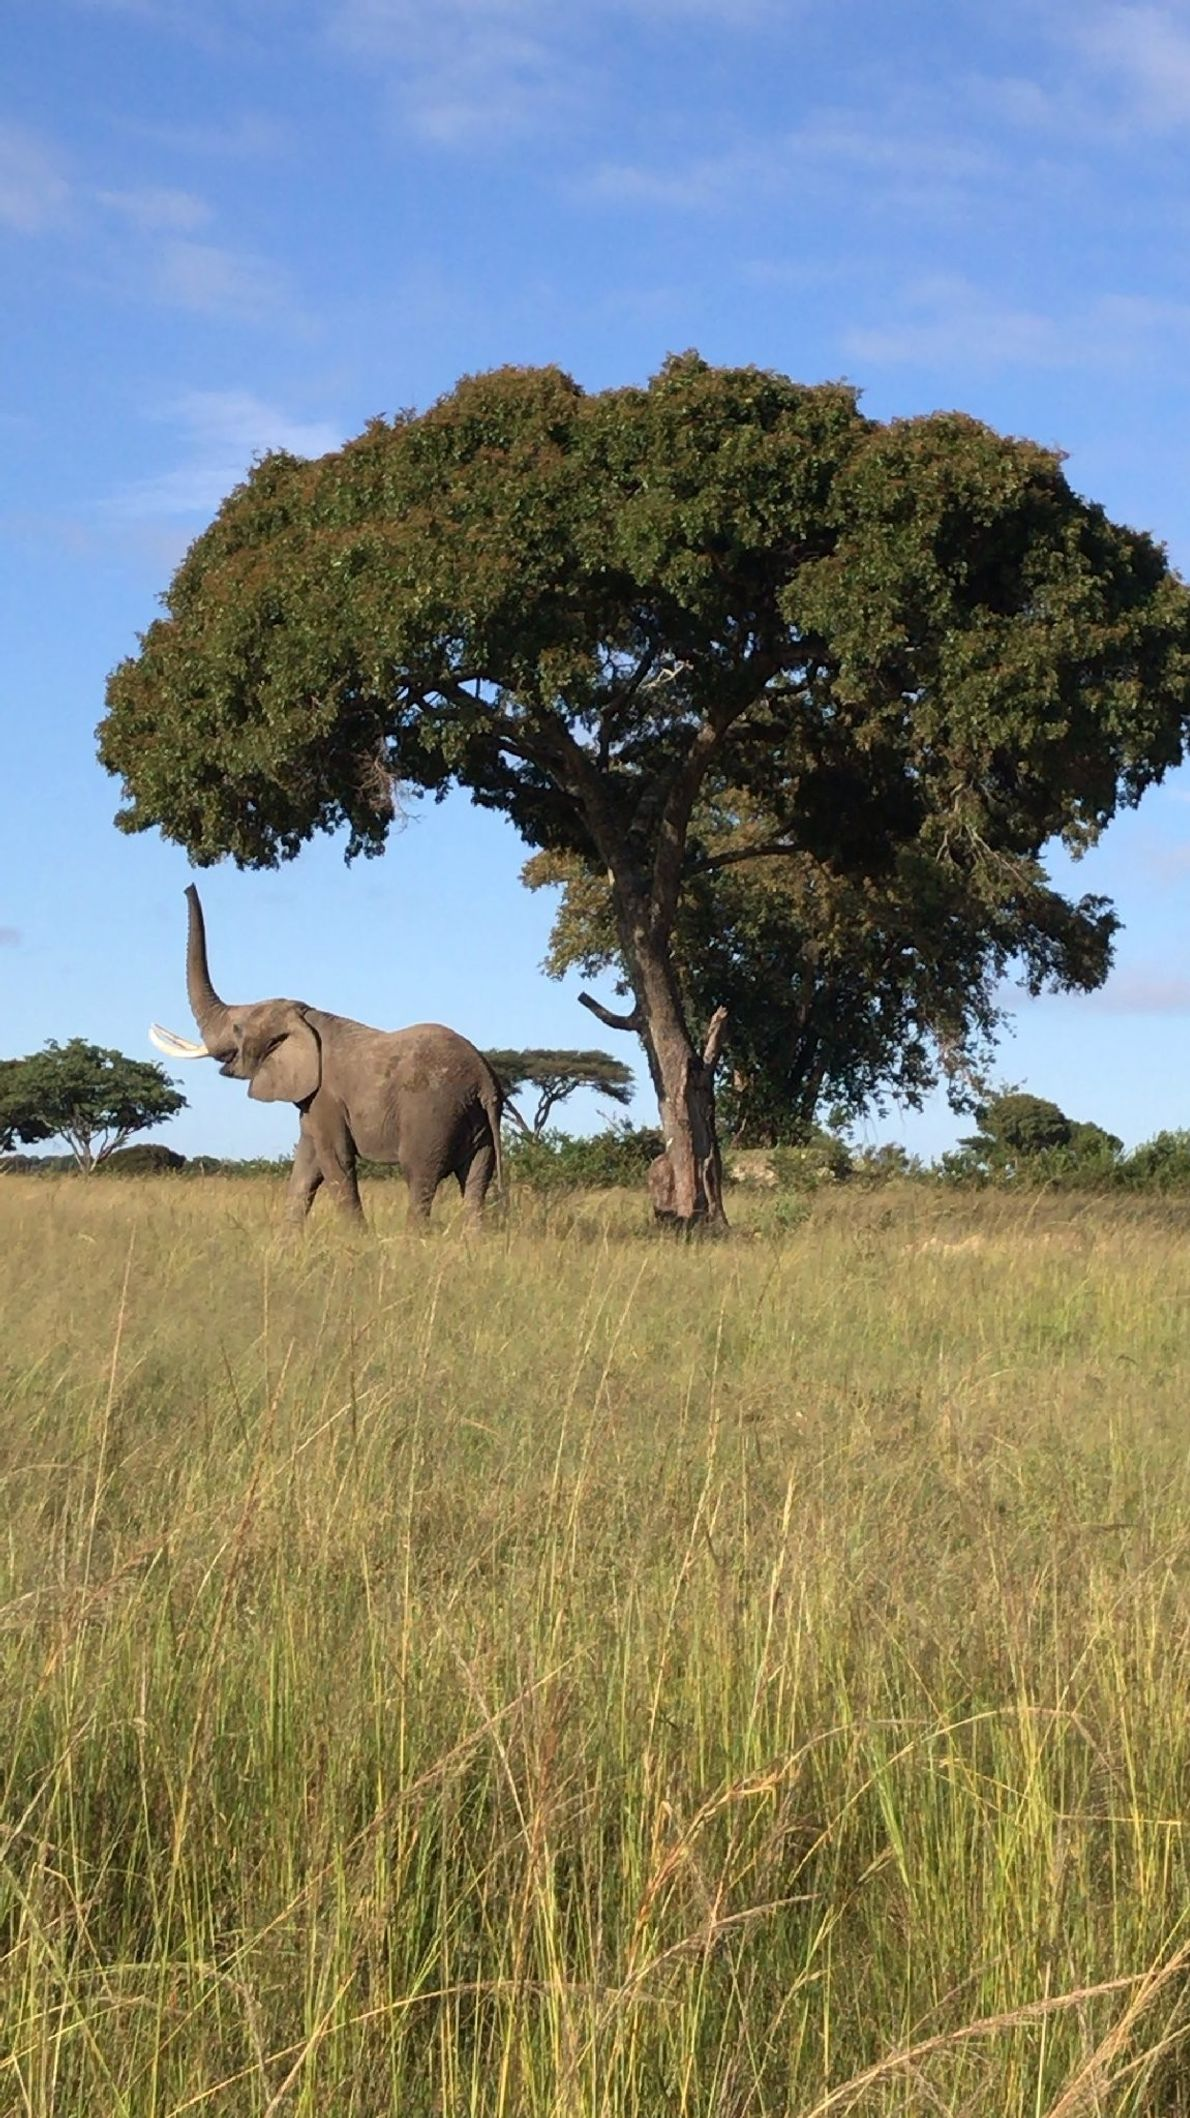 Your Shot photographer Chelsea T. made this mobile image while on an elephant walk in Imire ...